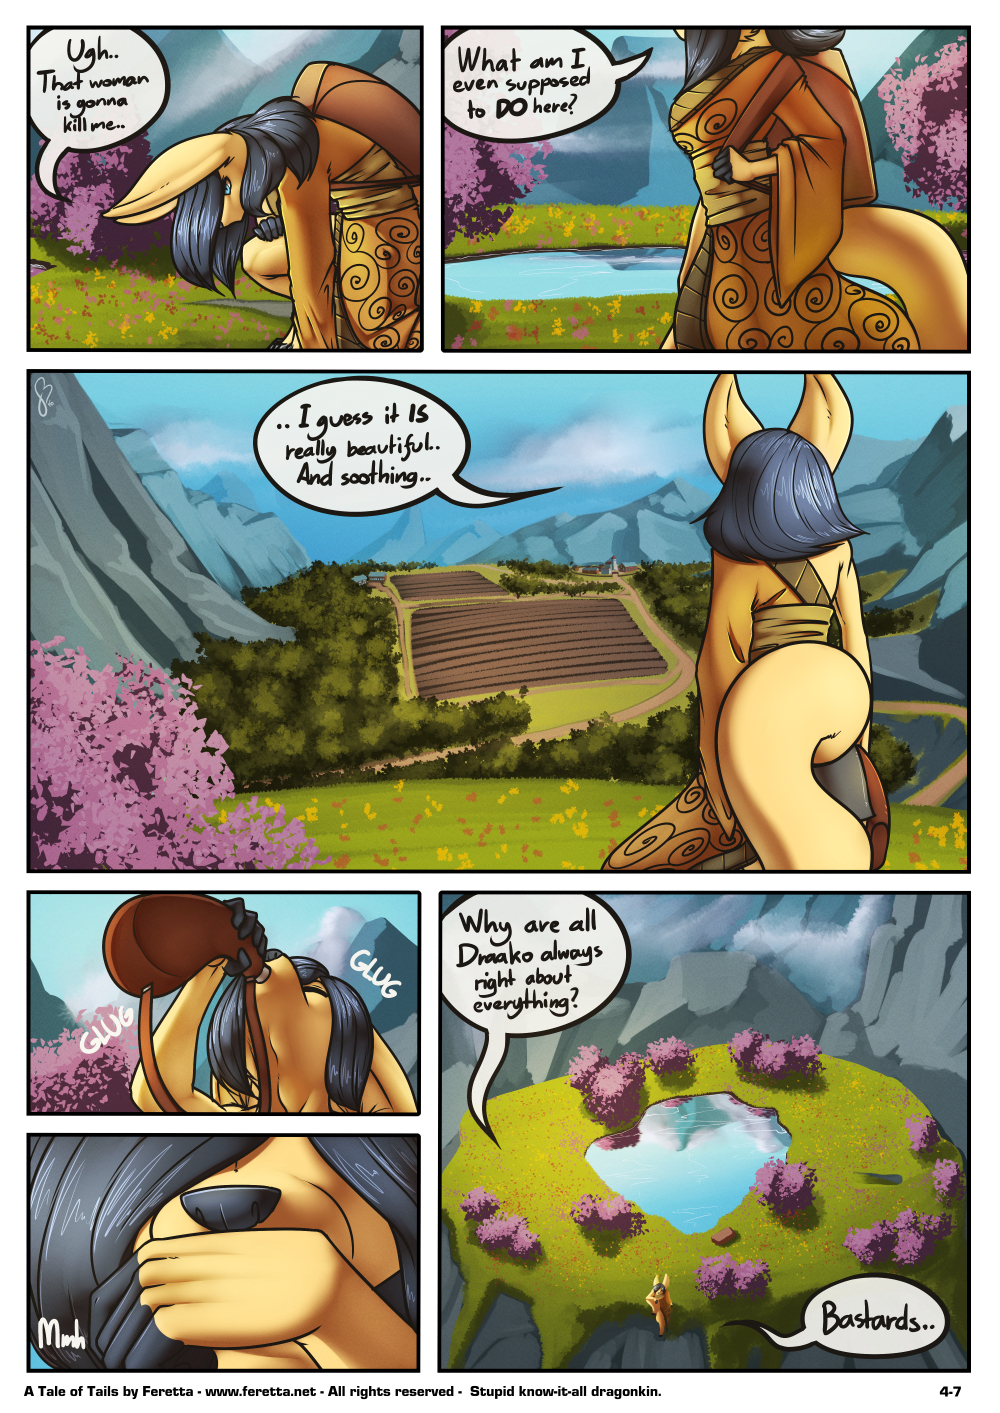 A Tale of Tails, 4-7